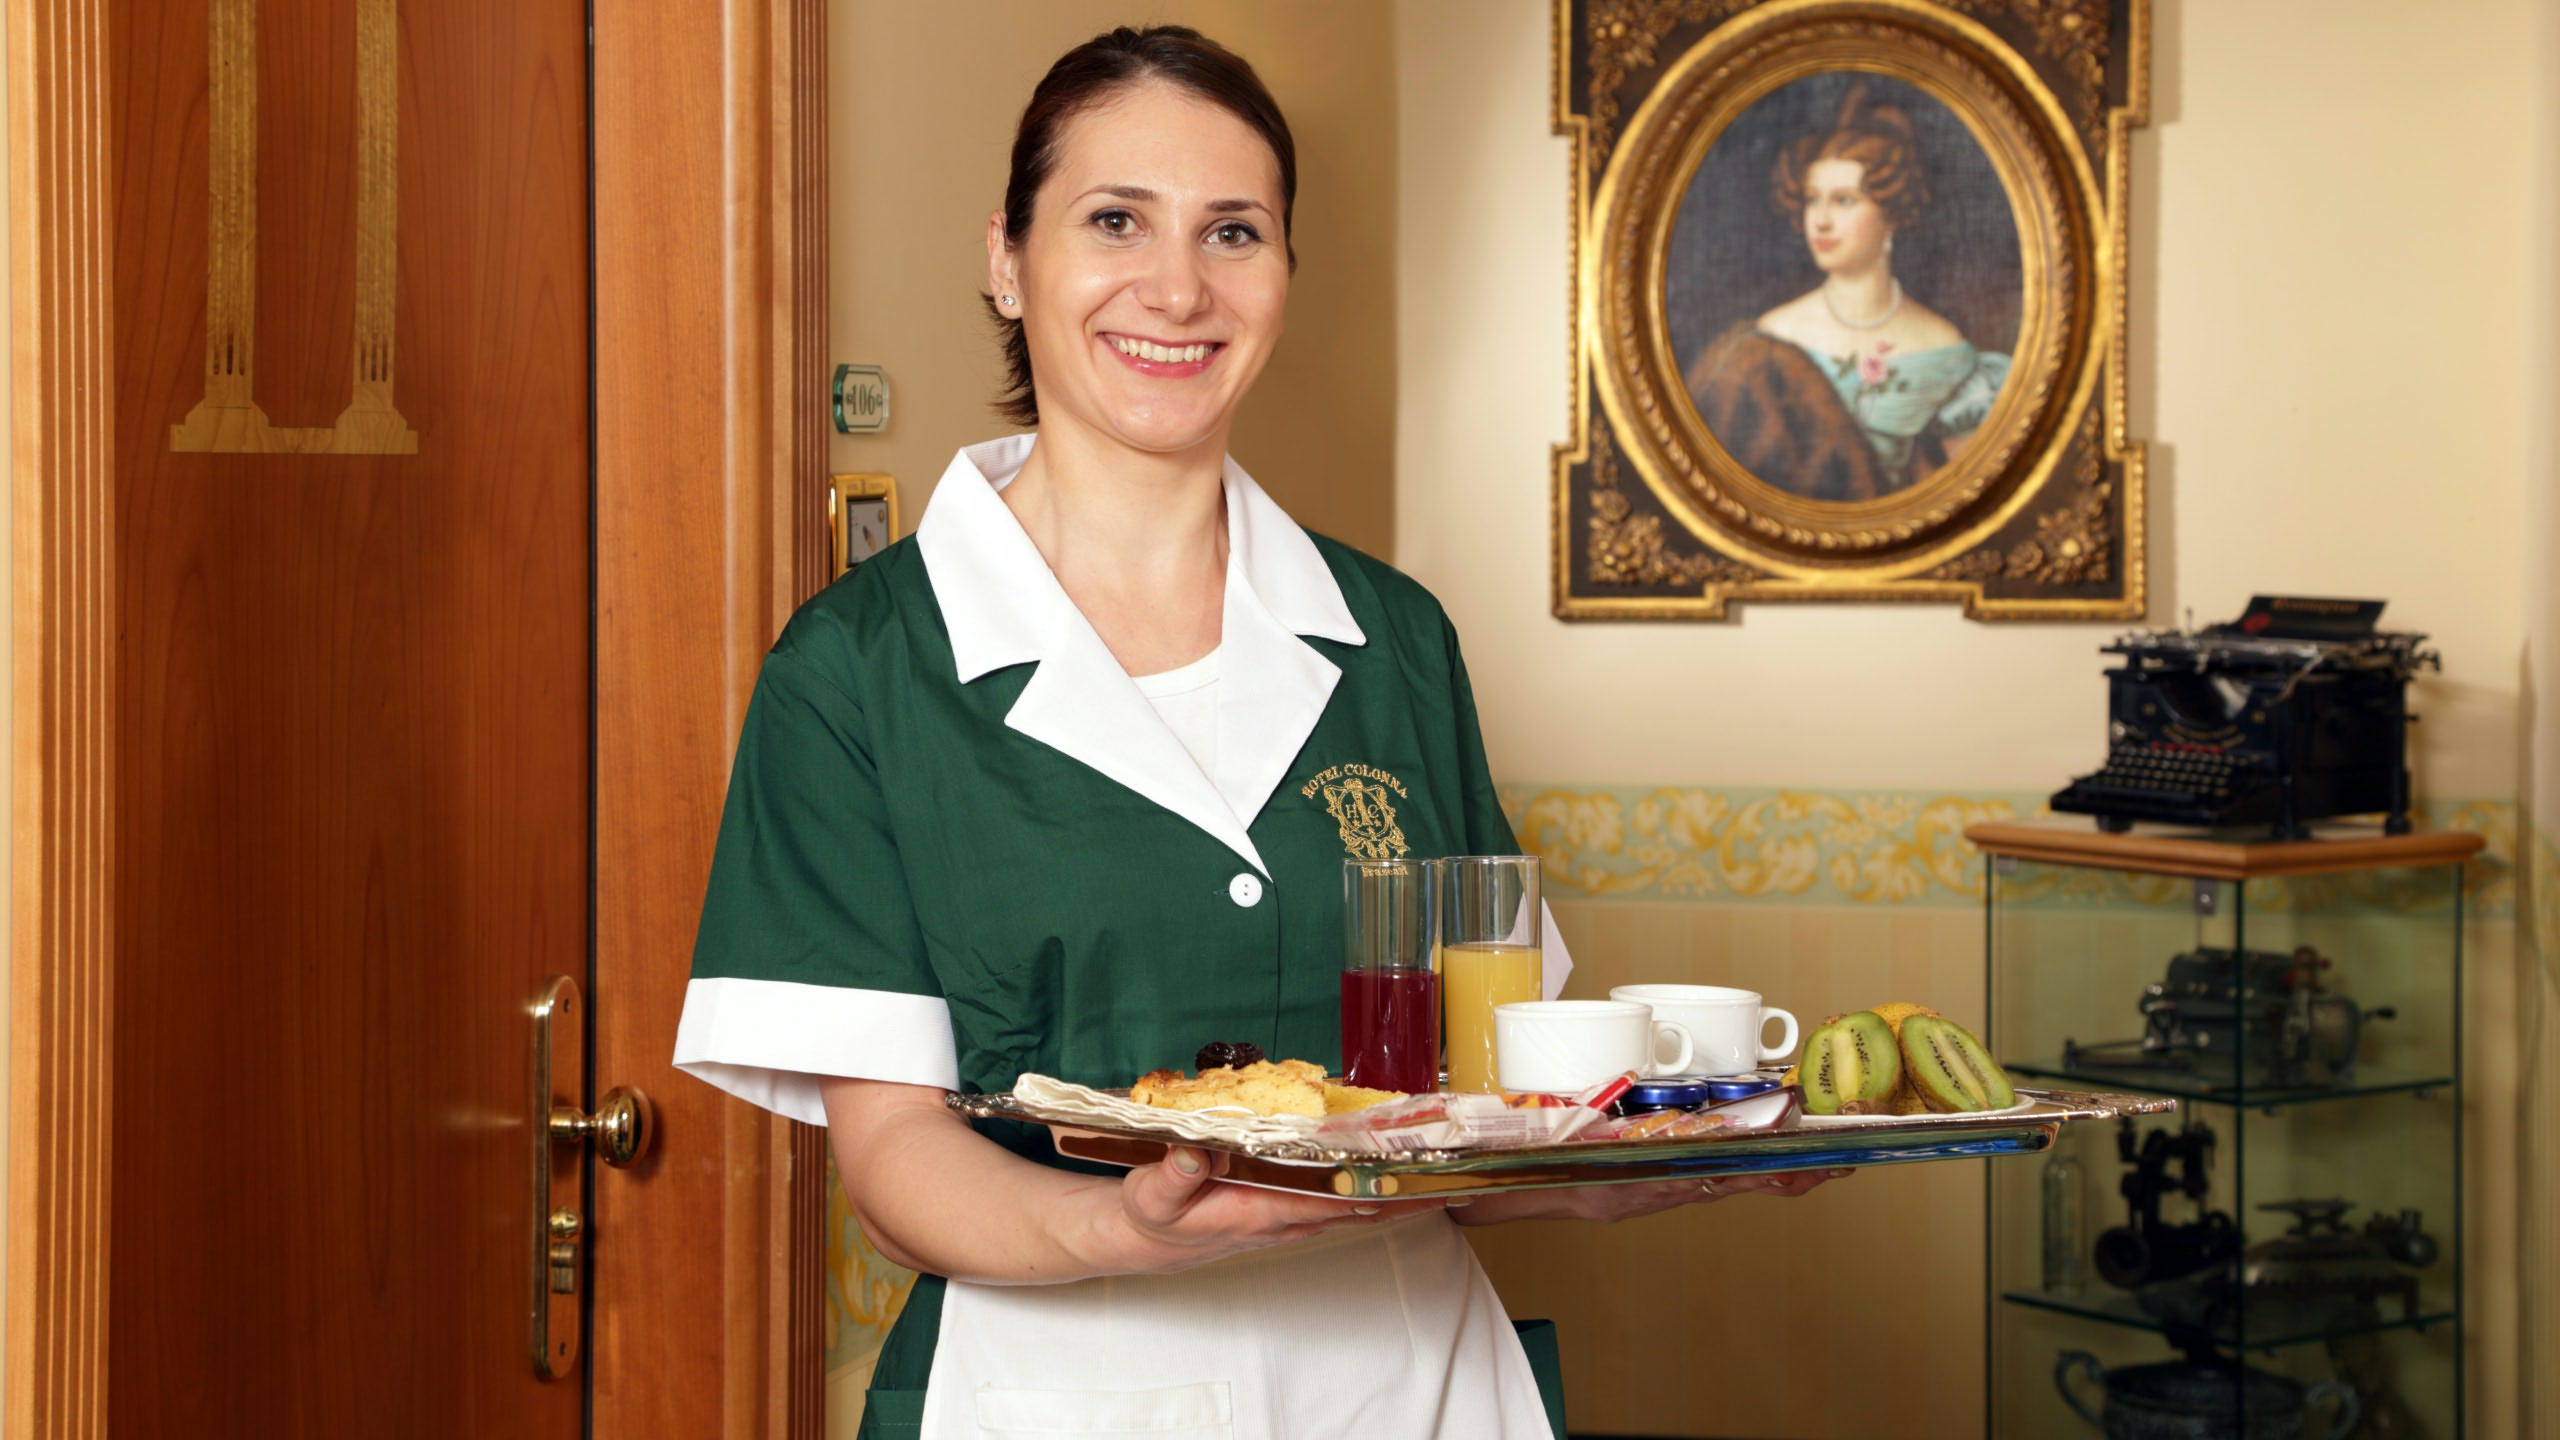 Hotel-Colonna-Frascati-chambermaid